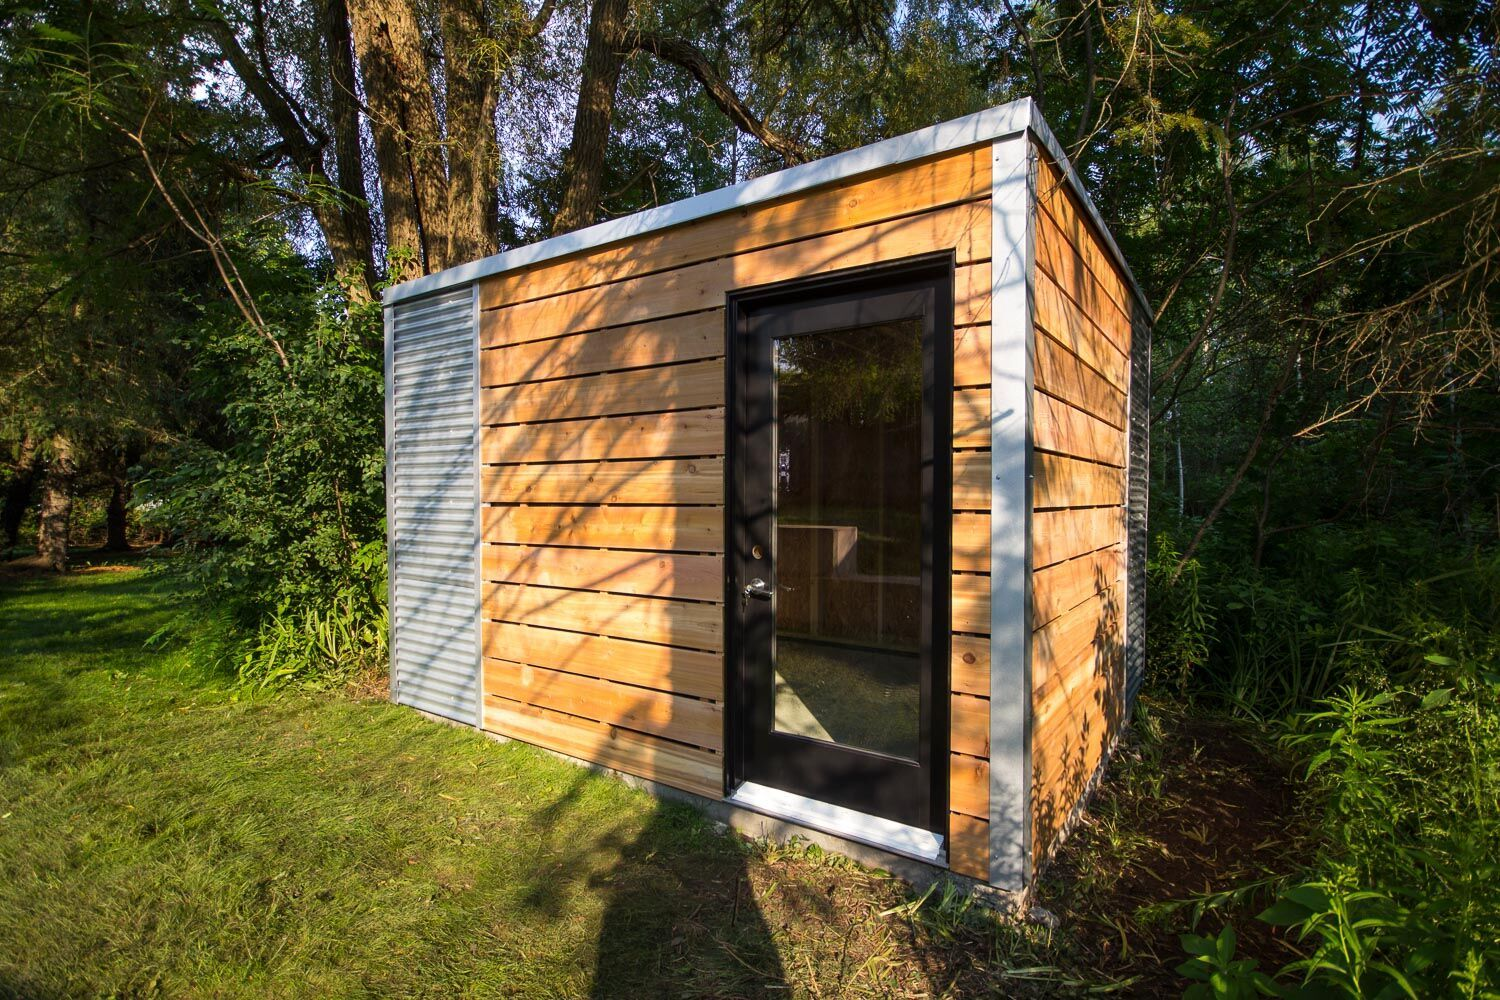 12' x 8' Custom Cube Shed with Cedar Siding and Galvalume Steel